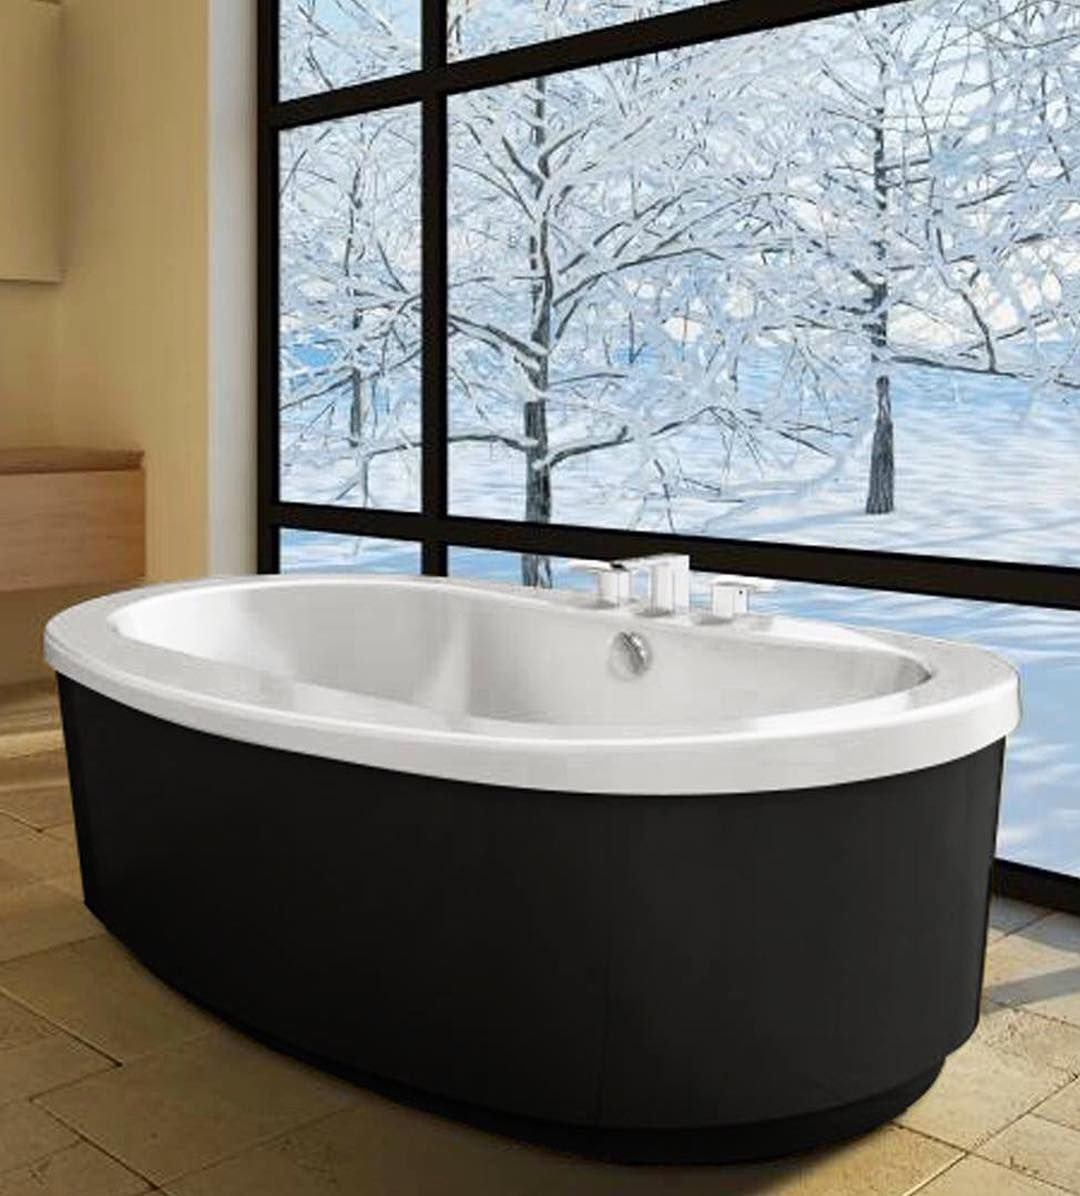 The Bravo Freestanding Bath Makes The Perfect Spot To Defrost After